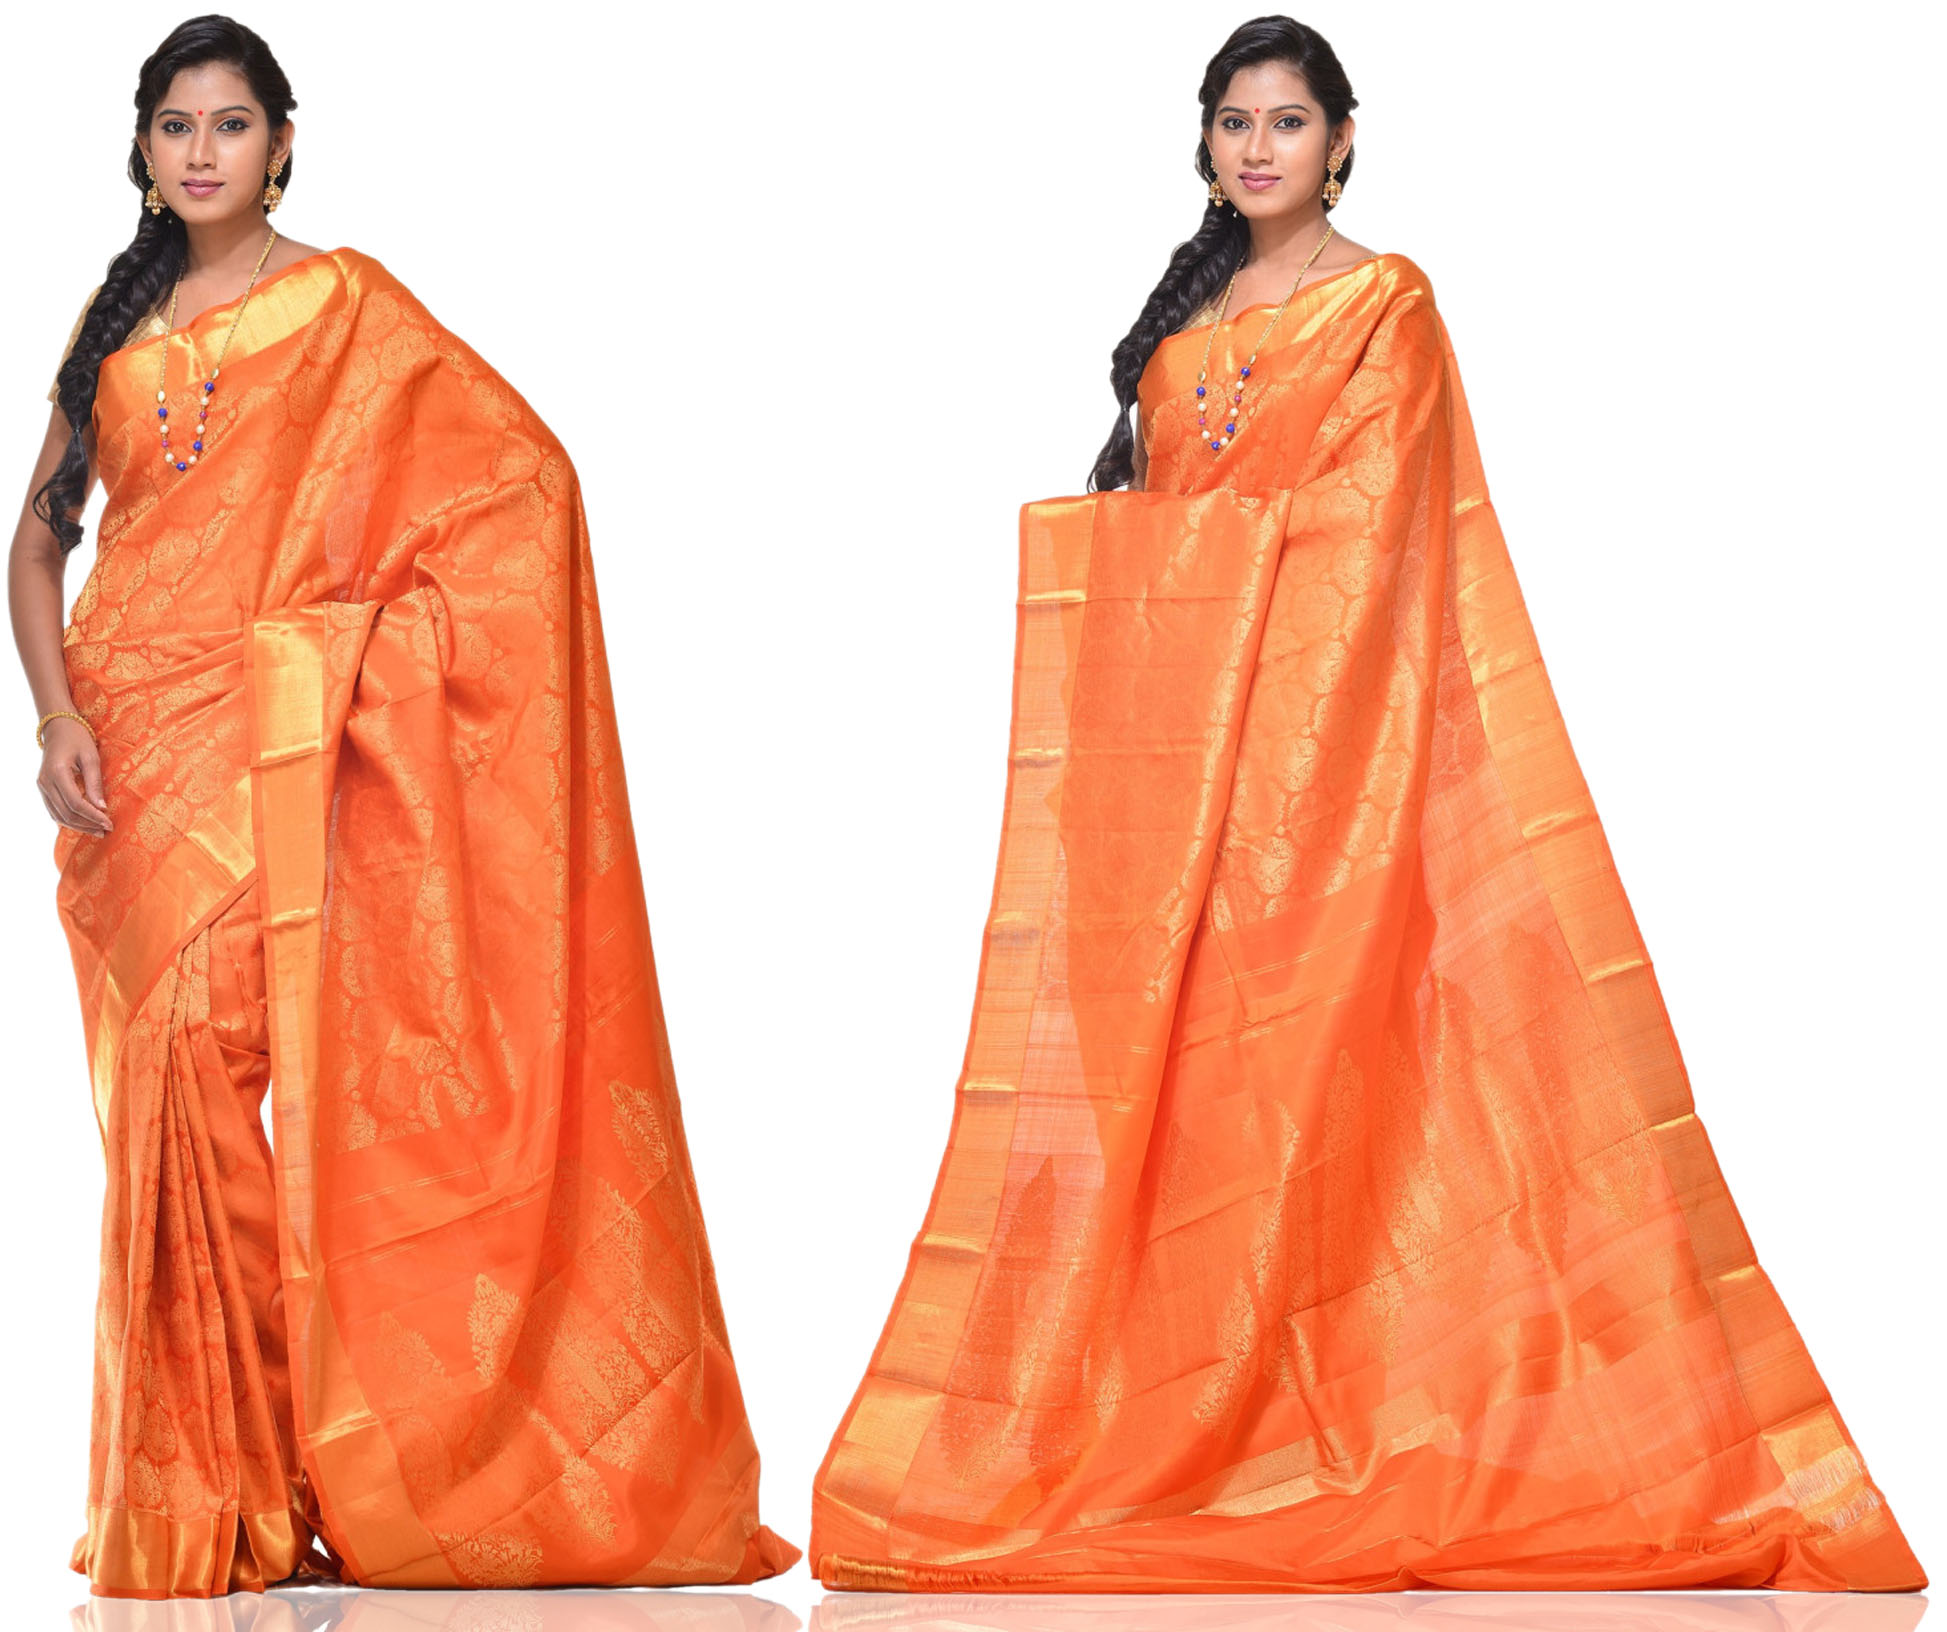 Price: - 16500 /-   New Arrivals Arrived kanchipuram Sarees with New Design. These Saree Gives You a Traditional Look of South India. This Saree Worn at Wedding, Parties, Festivals, Functions. Sign up now for E-book you will be updated with latest collection of ethnic verities. For More Info Click on :-  www.uppada.com   We manufacture of Uppada sarees, Paithani sarees, Banarasi sarees, Venkatagiri Sarees, Gadwal Sarees, Khadi sarees, Hand Painted Kalamkari Dupatta, Ikkat sarees, Kanchipuram Sarees, Atr Poly Silk Sarees, Dupattas, Stoles etc. For more info us at 040 64640303, 441905005.  Buy online: - uppada.com  - by Paithani, Hyderabad